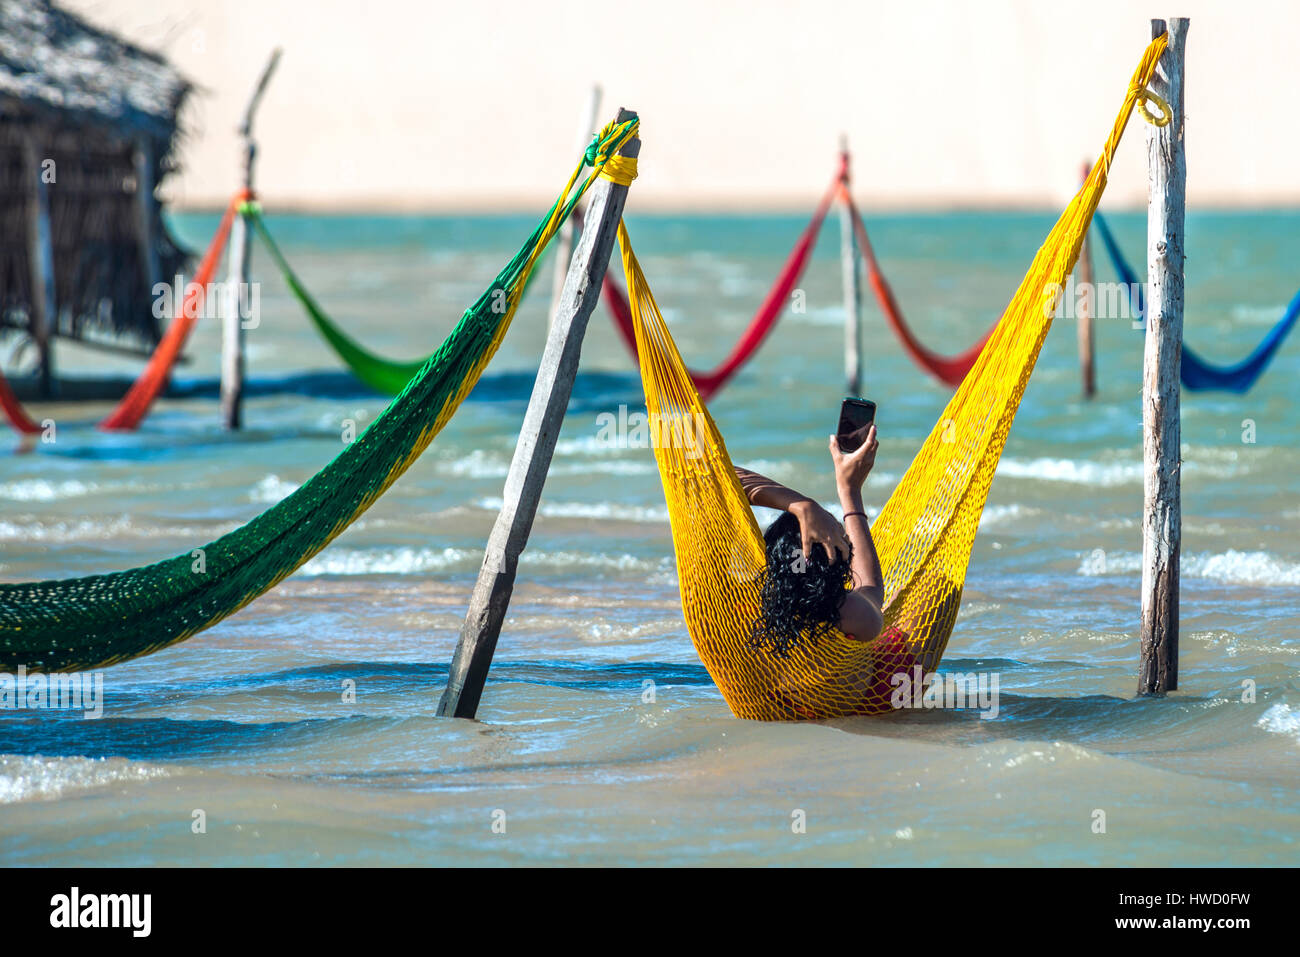 Jericoacoara, Brazil - July 17, 2016: Woman relaxing on hammock and do selfie on vacation - Stock Image